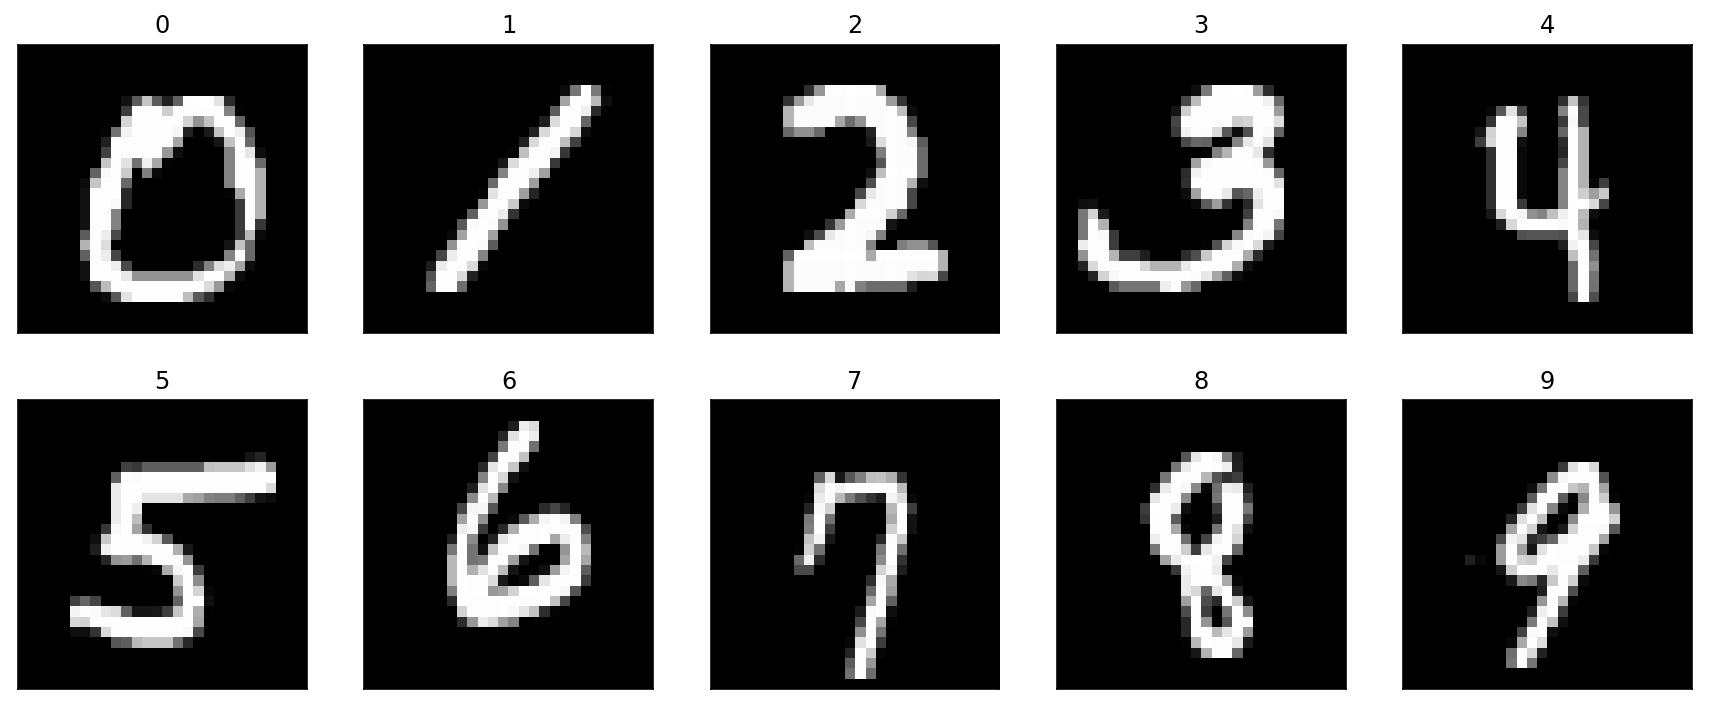 Pen Stroke Sequence Feature Extraction from MNIST Digits